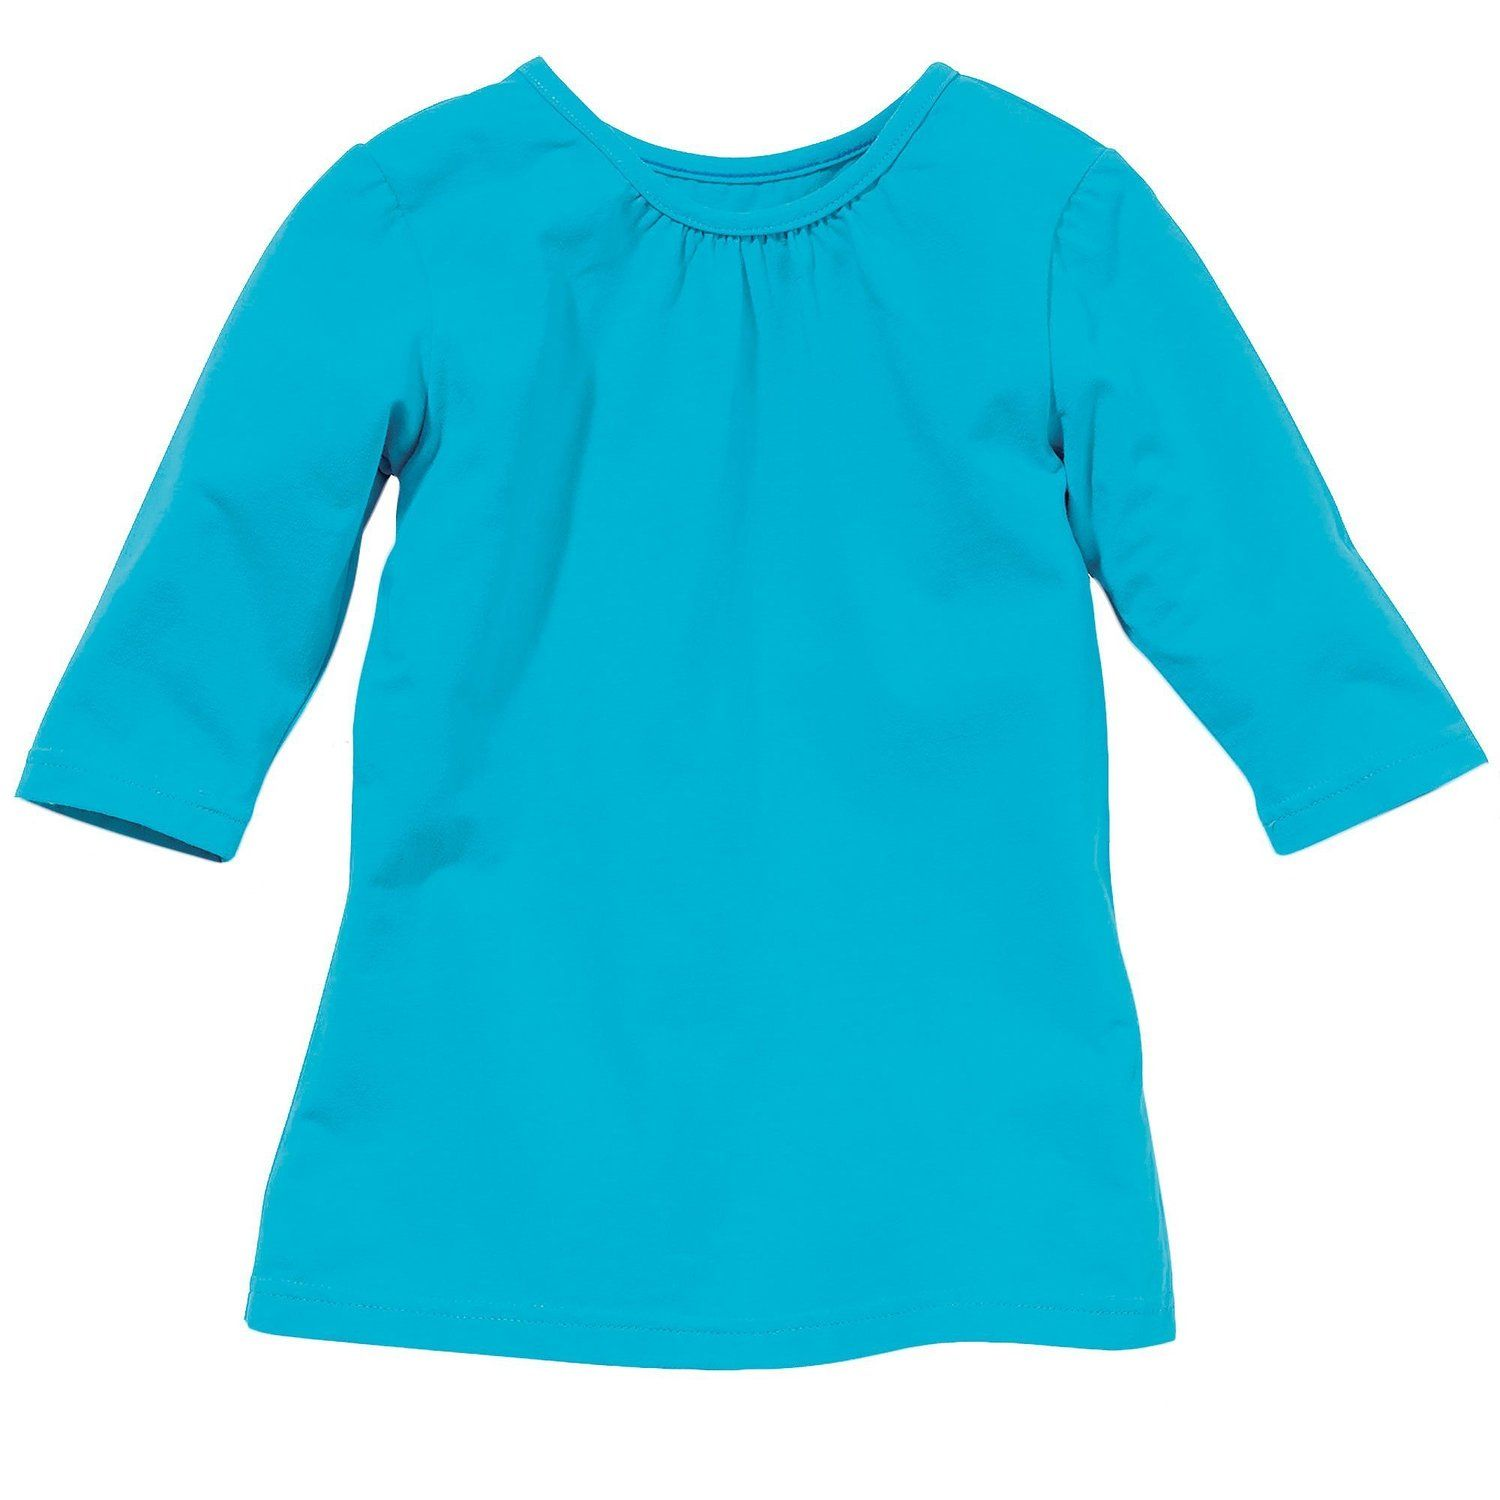 Mosquito Repellent Kids TShirt Deet-Free Insect Repellent Clothing,Tick Resistant Clothes for Boys and Girls Fog Off Sportswear